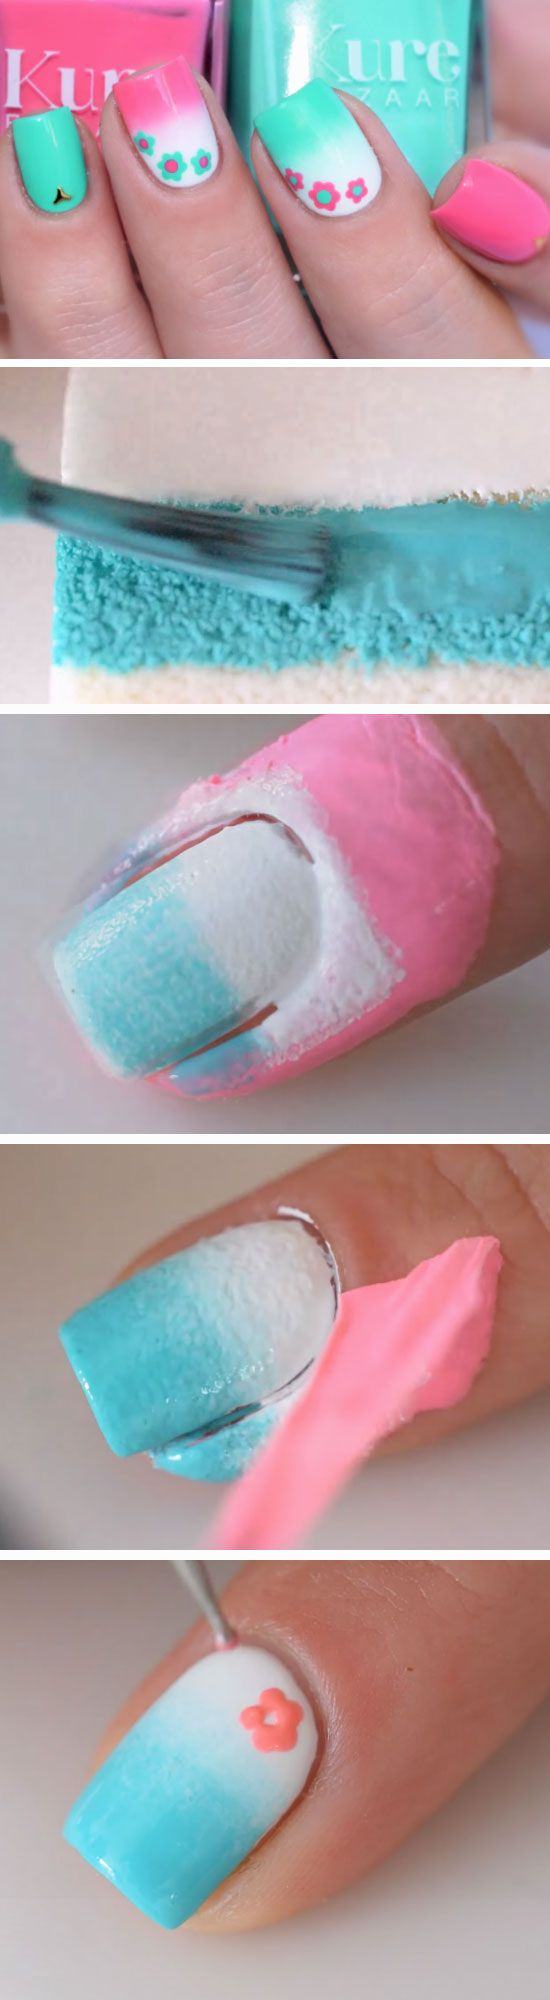 Pink + Blue | Awesome Spring Nails Design for Short Nails | Easy Summer Nail Art Ideas